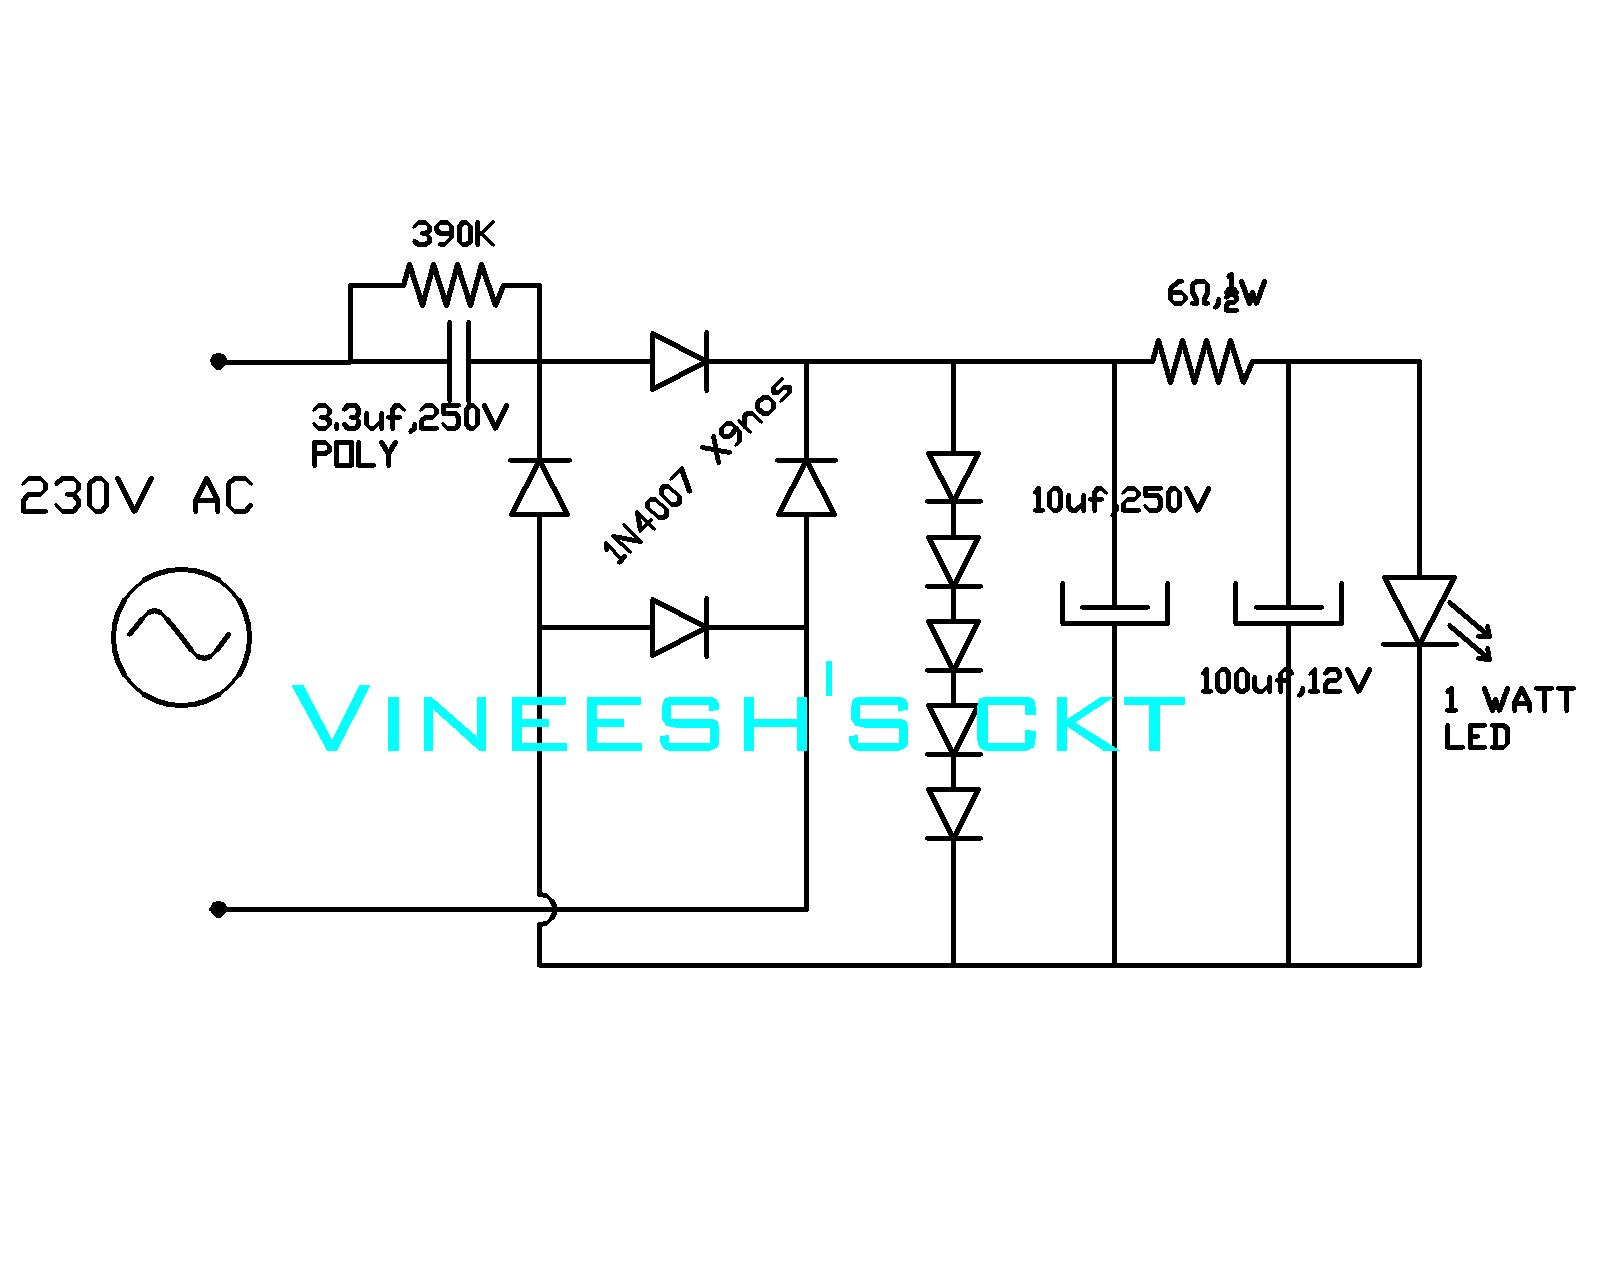 simple circuits vineetron: 230V TO 1 WATT LED DRIVER